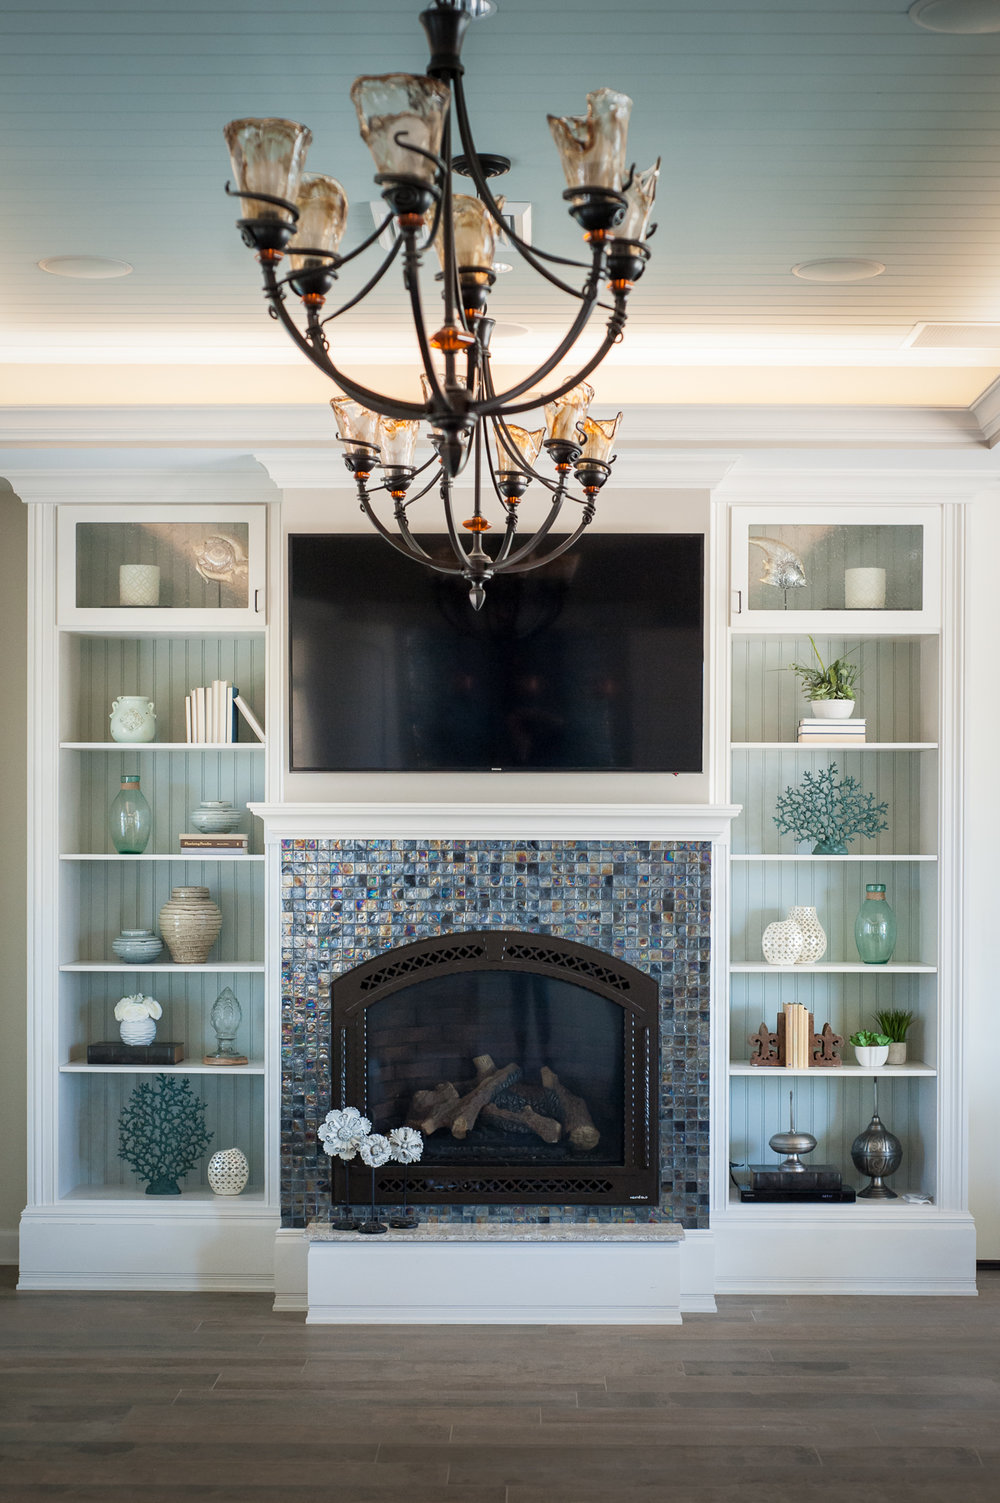 Micamy_Design_Studio_Interior_Design_Artisan_Lakes_Clubhouse_Serene_Coastal_Glass_Mosaic_Tile_Backsplash_Fireplace_SherwinWilliams_Crossville_Blue_ (2).jpg